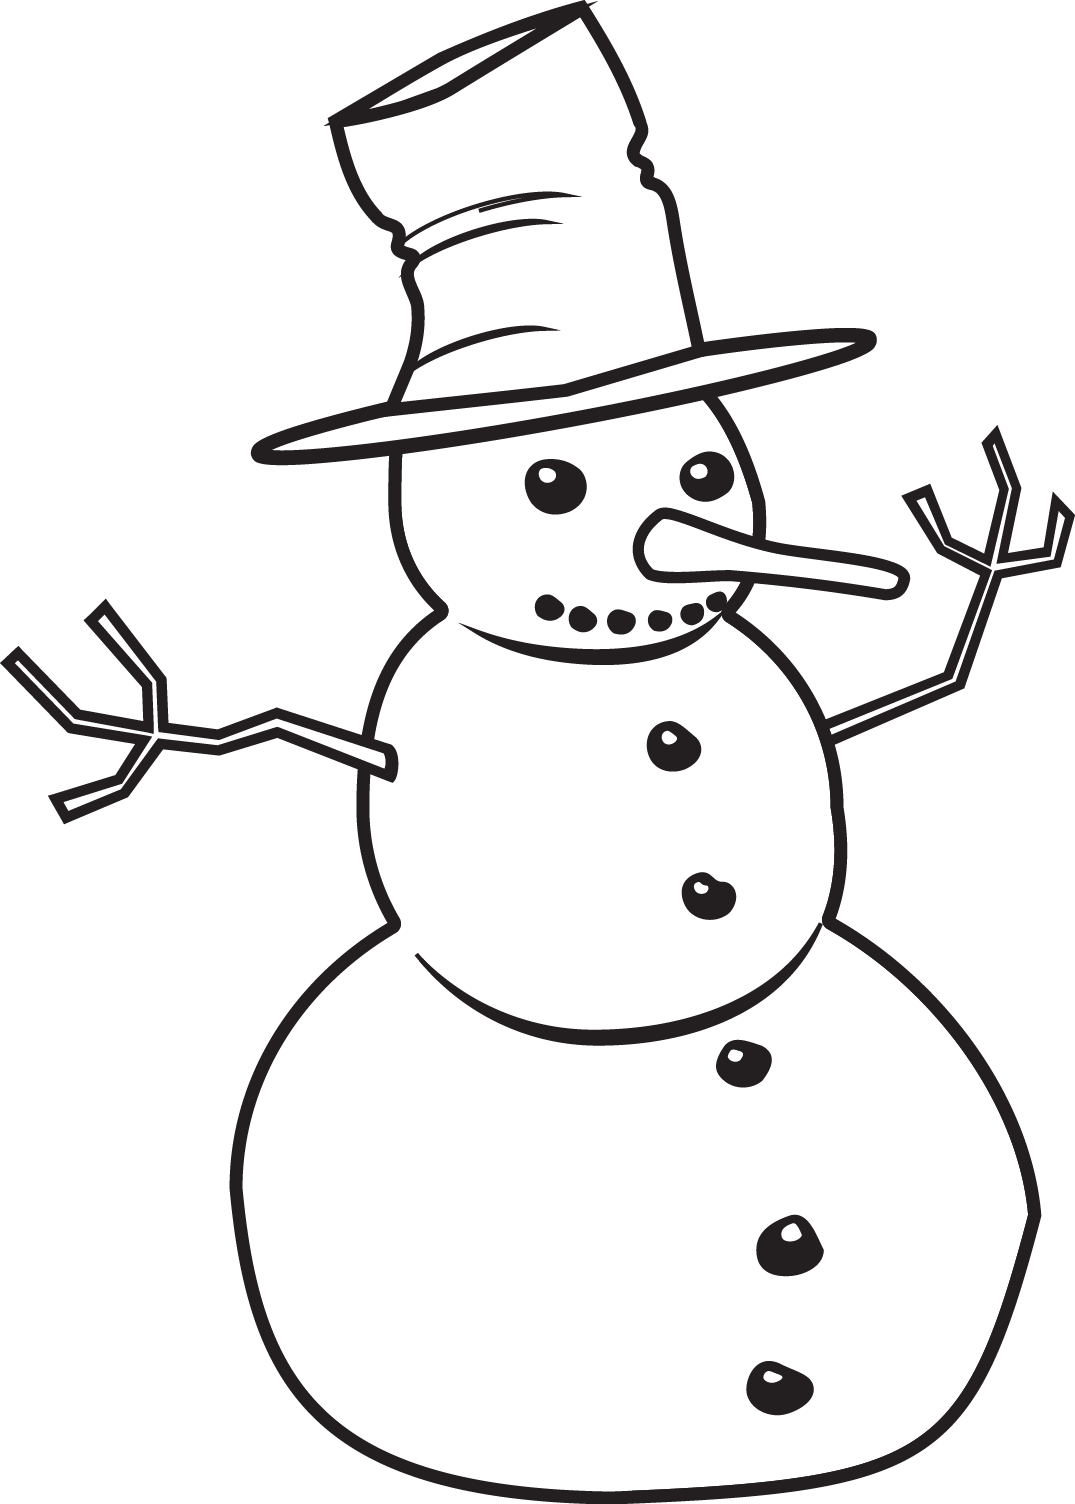 Clipart Snowman Outline Clipart Snowman Outline Transparent Free For Download On Webstockreview 2020